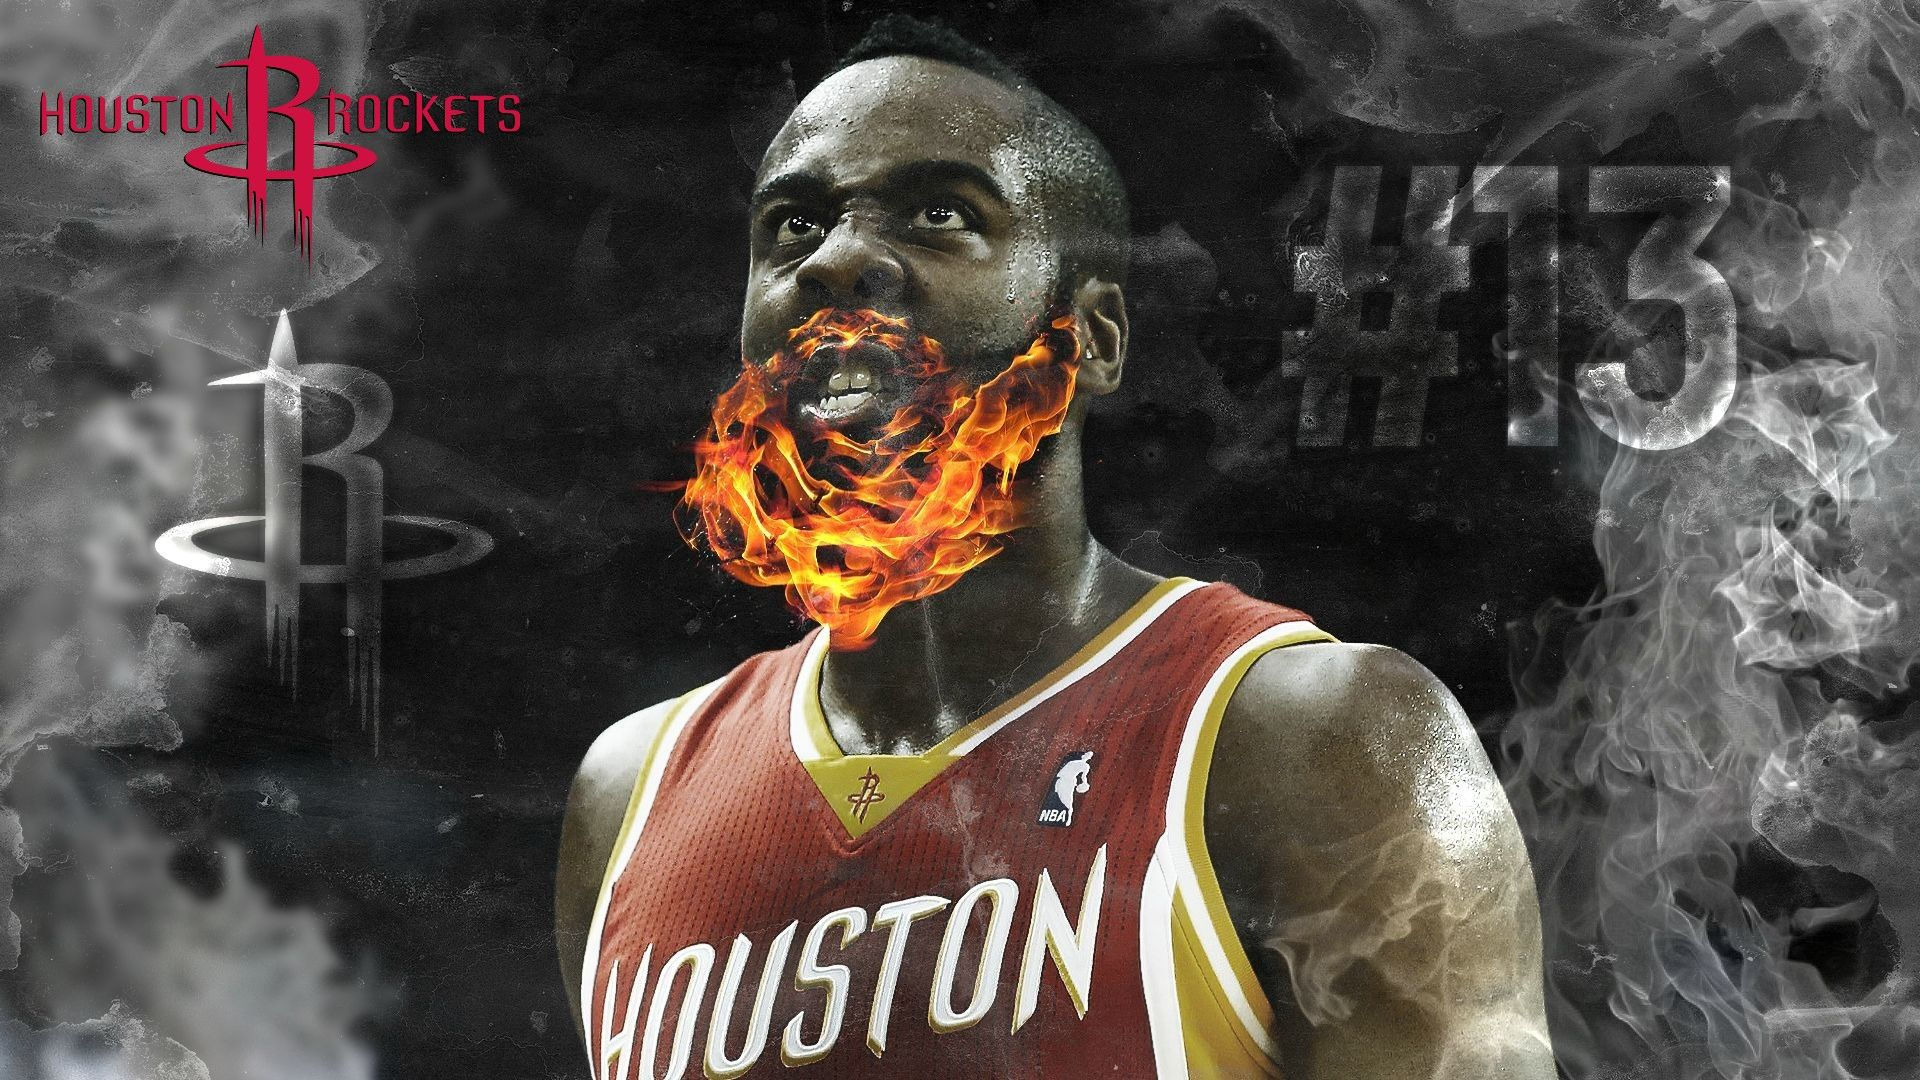 James Harden HD Wallpapers is the perfect High Quality NBA